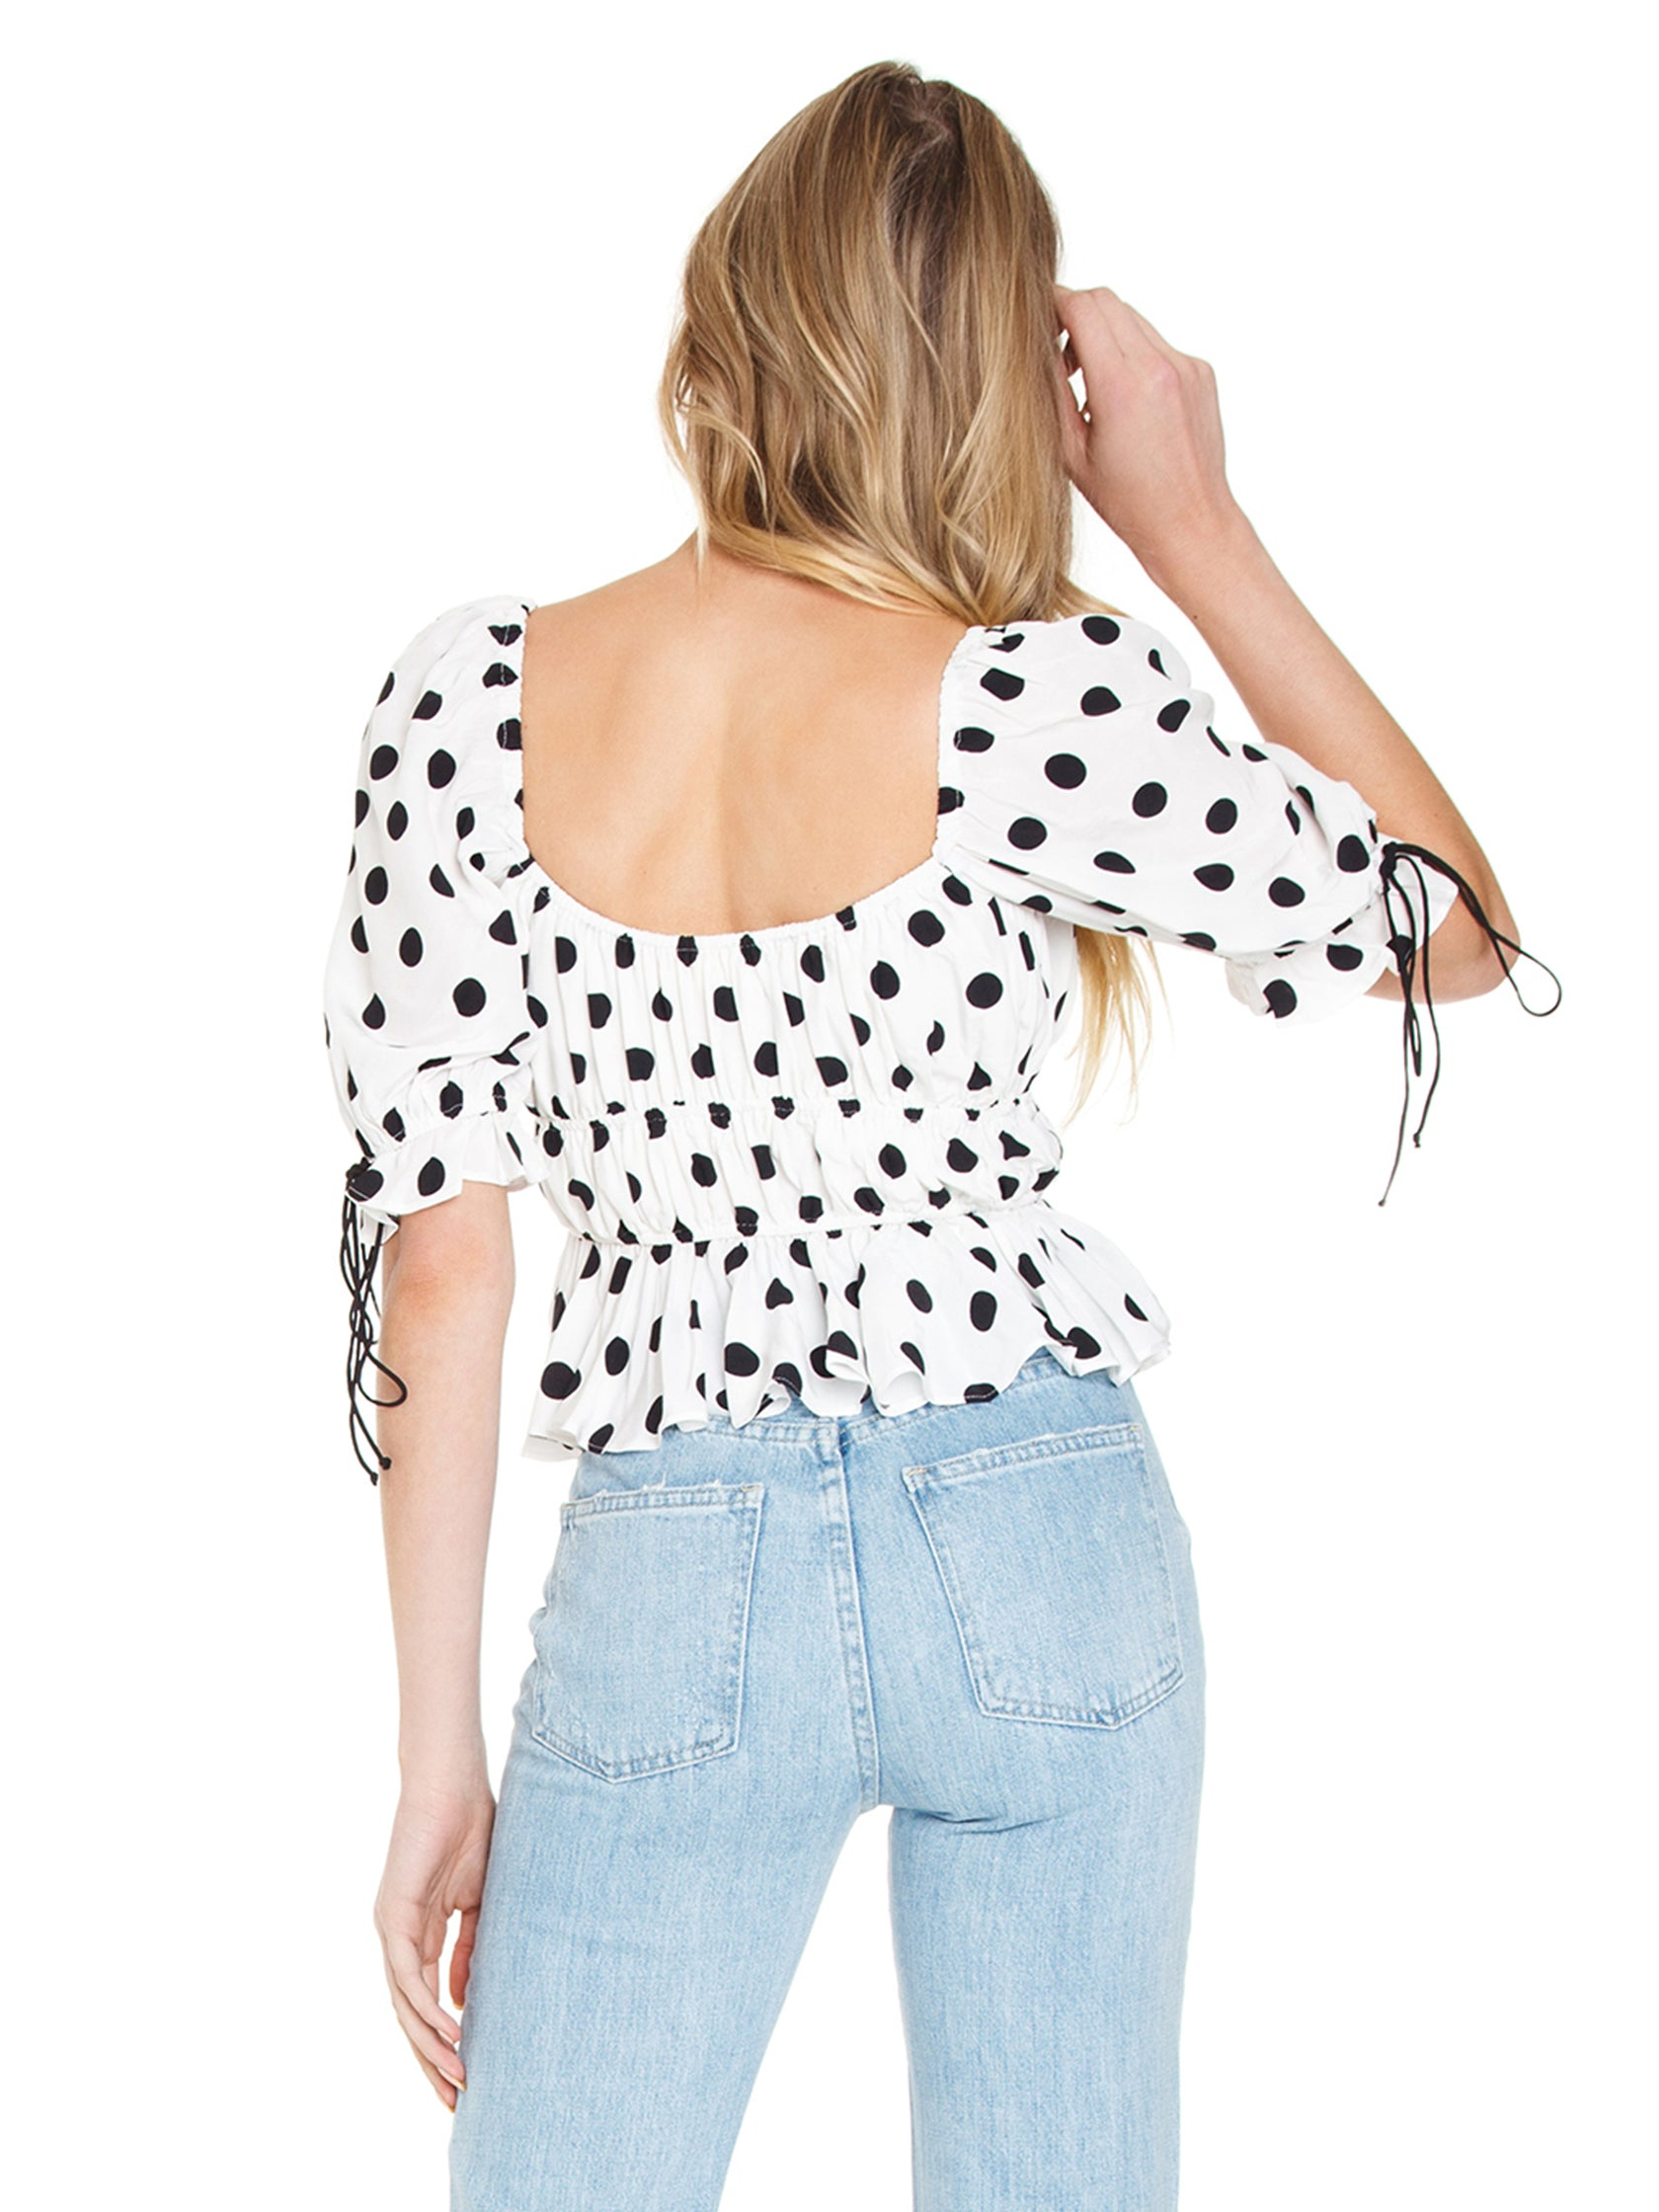 Women outfit in a top rental from For Love & Lemons called Mochi Summer Blouse